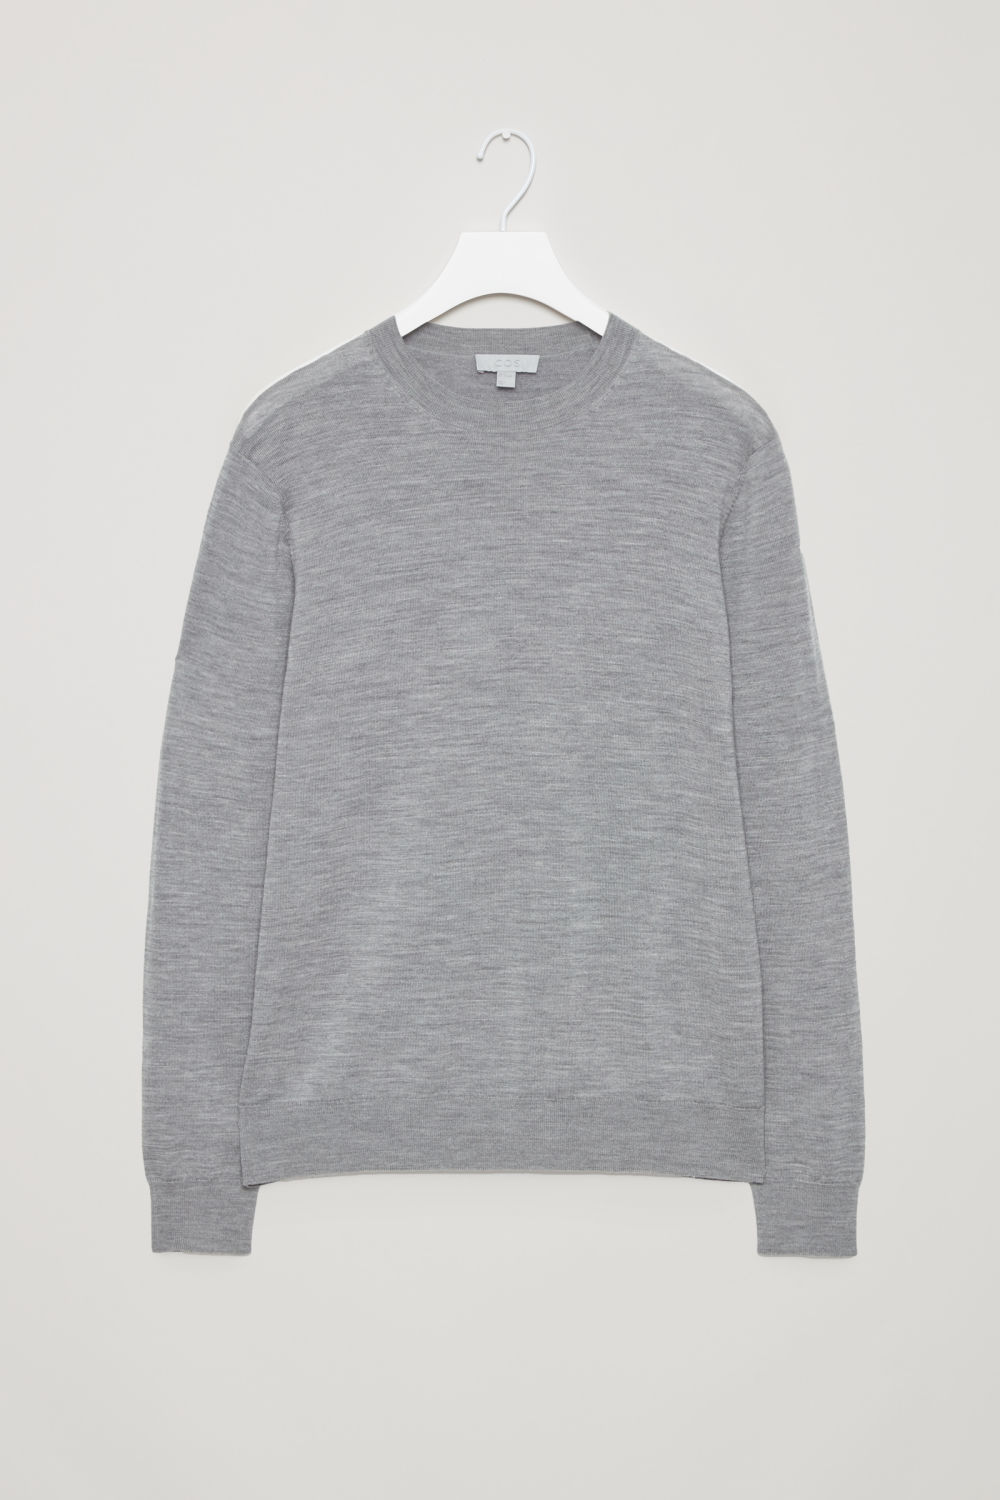 Sale With Mastercard KNITWEAR - Jumpers Dark Seas Online Cheapest  Clearance Low Price ohqogNkQV